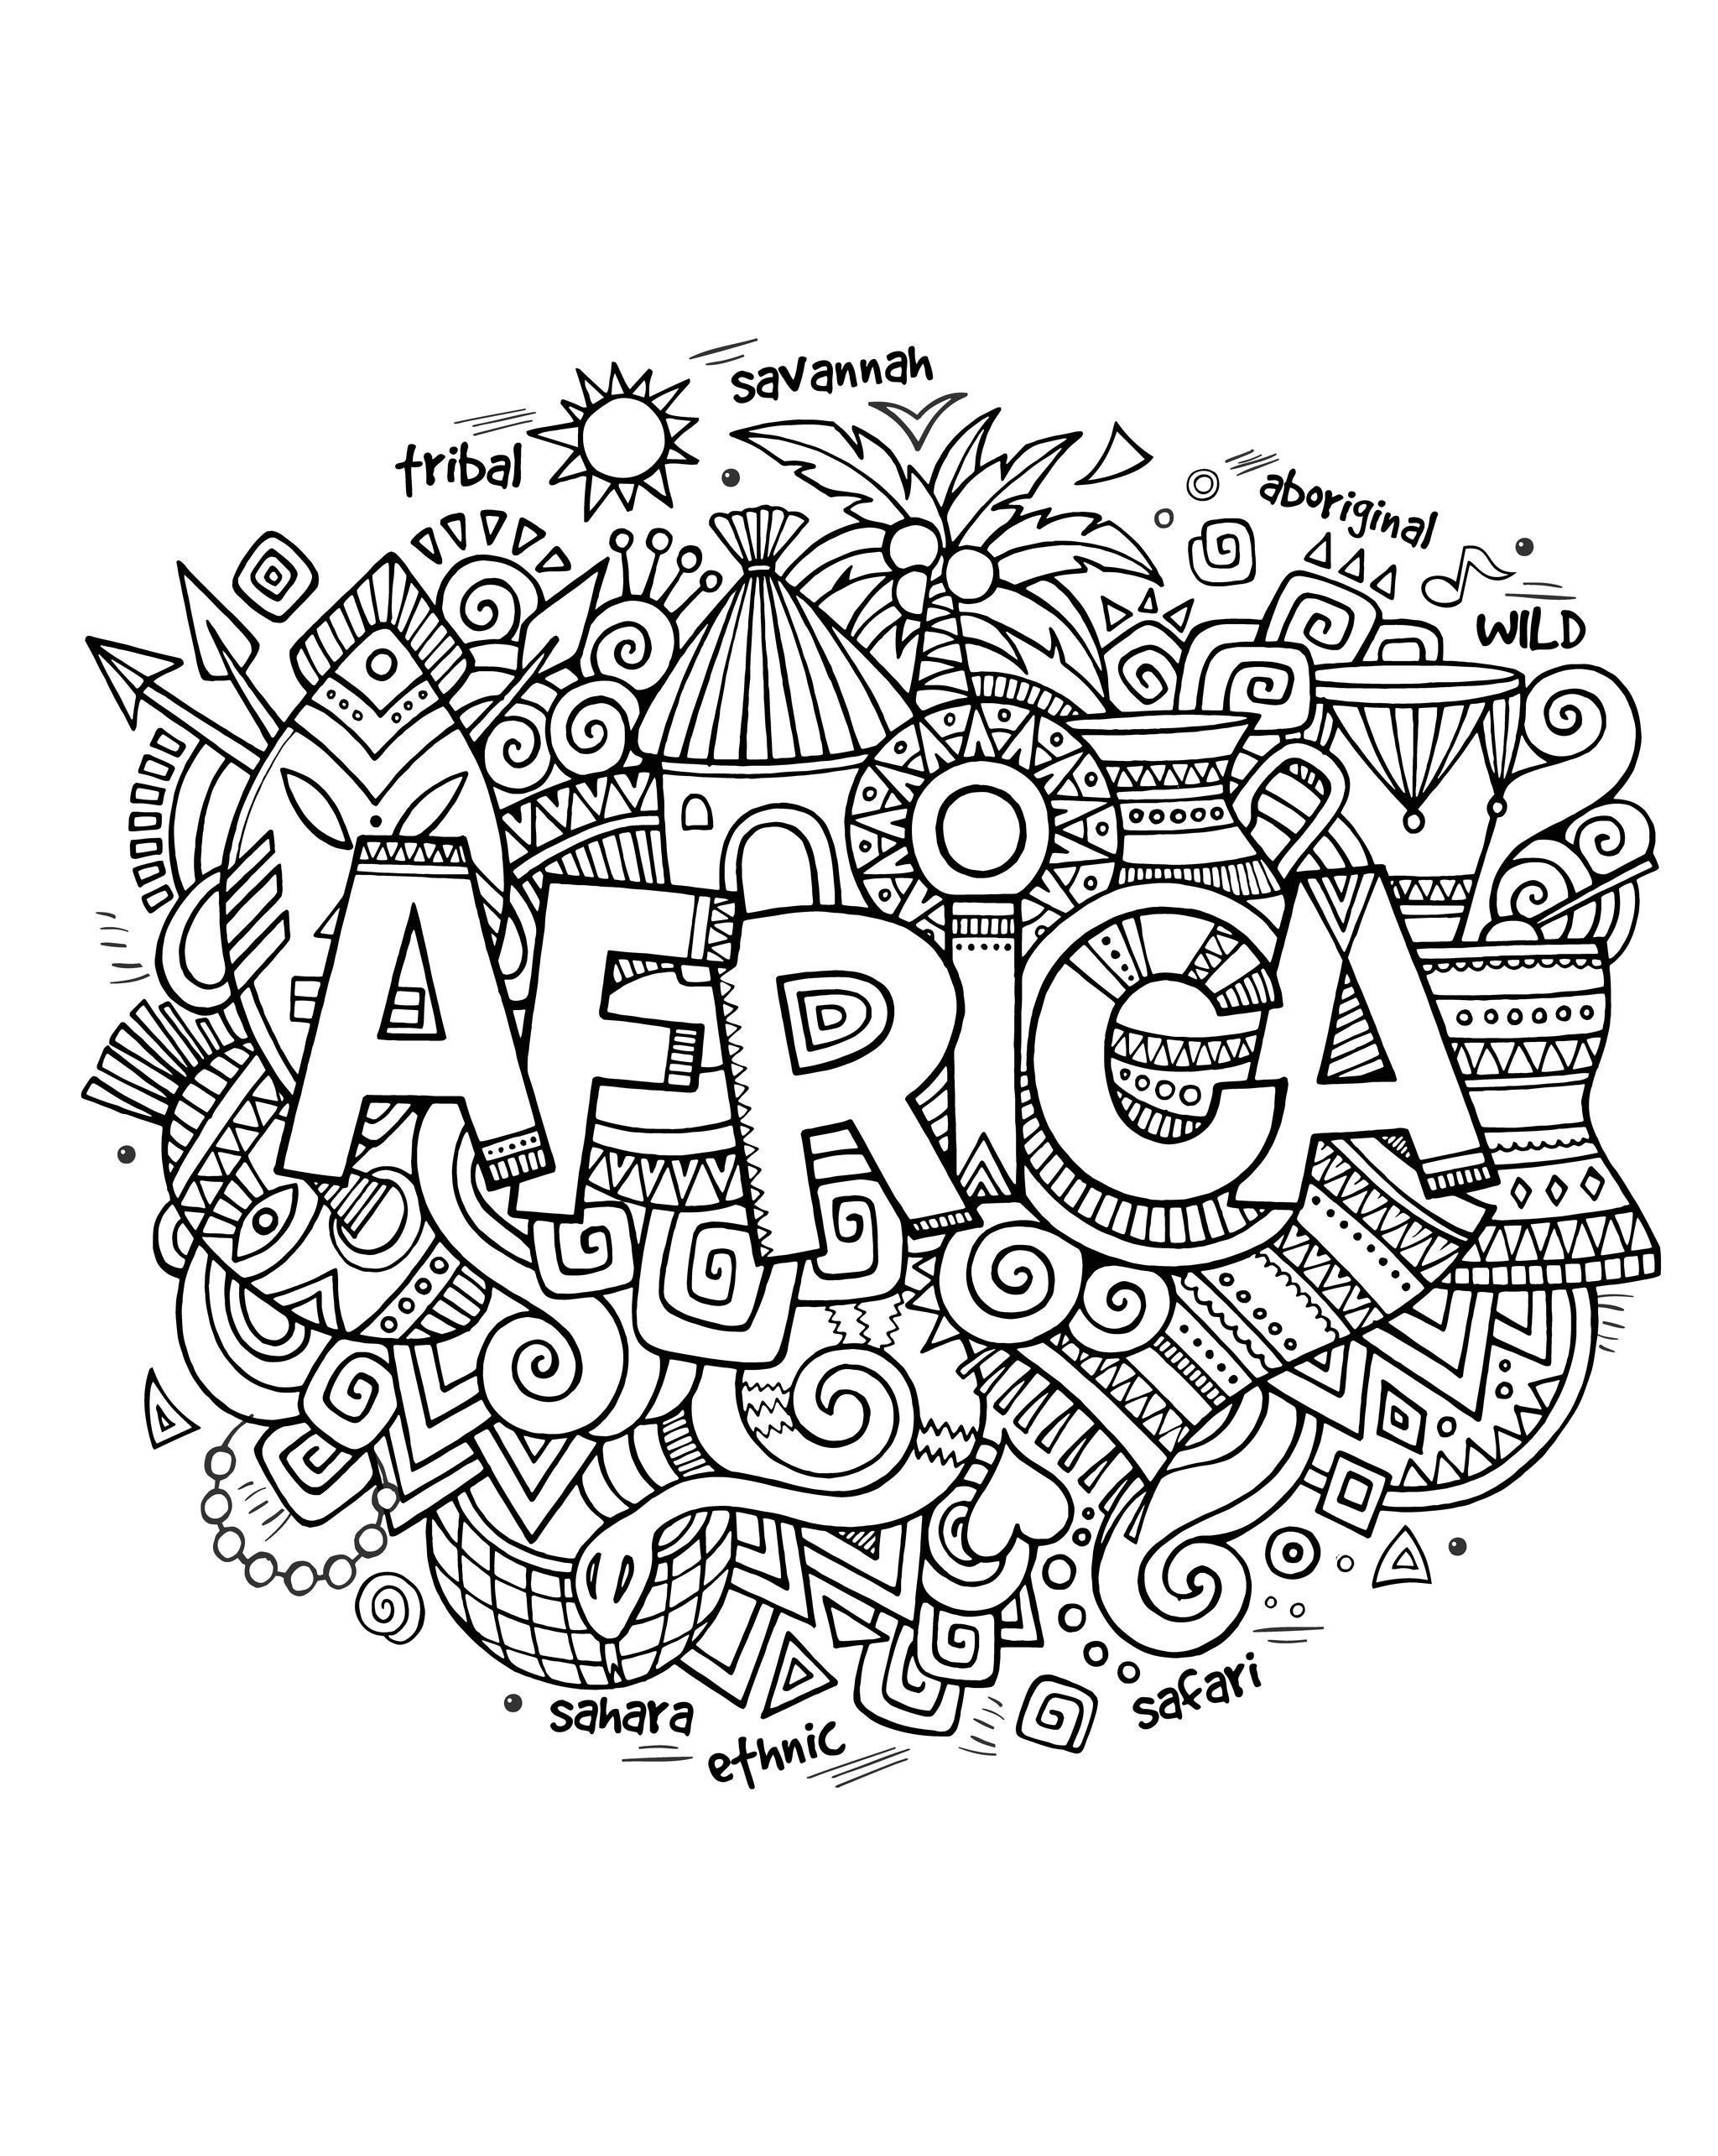 africa coloring map pin on shyloh 5th birthday map africa coloring